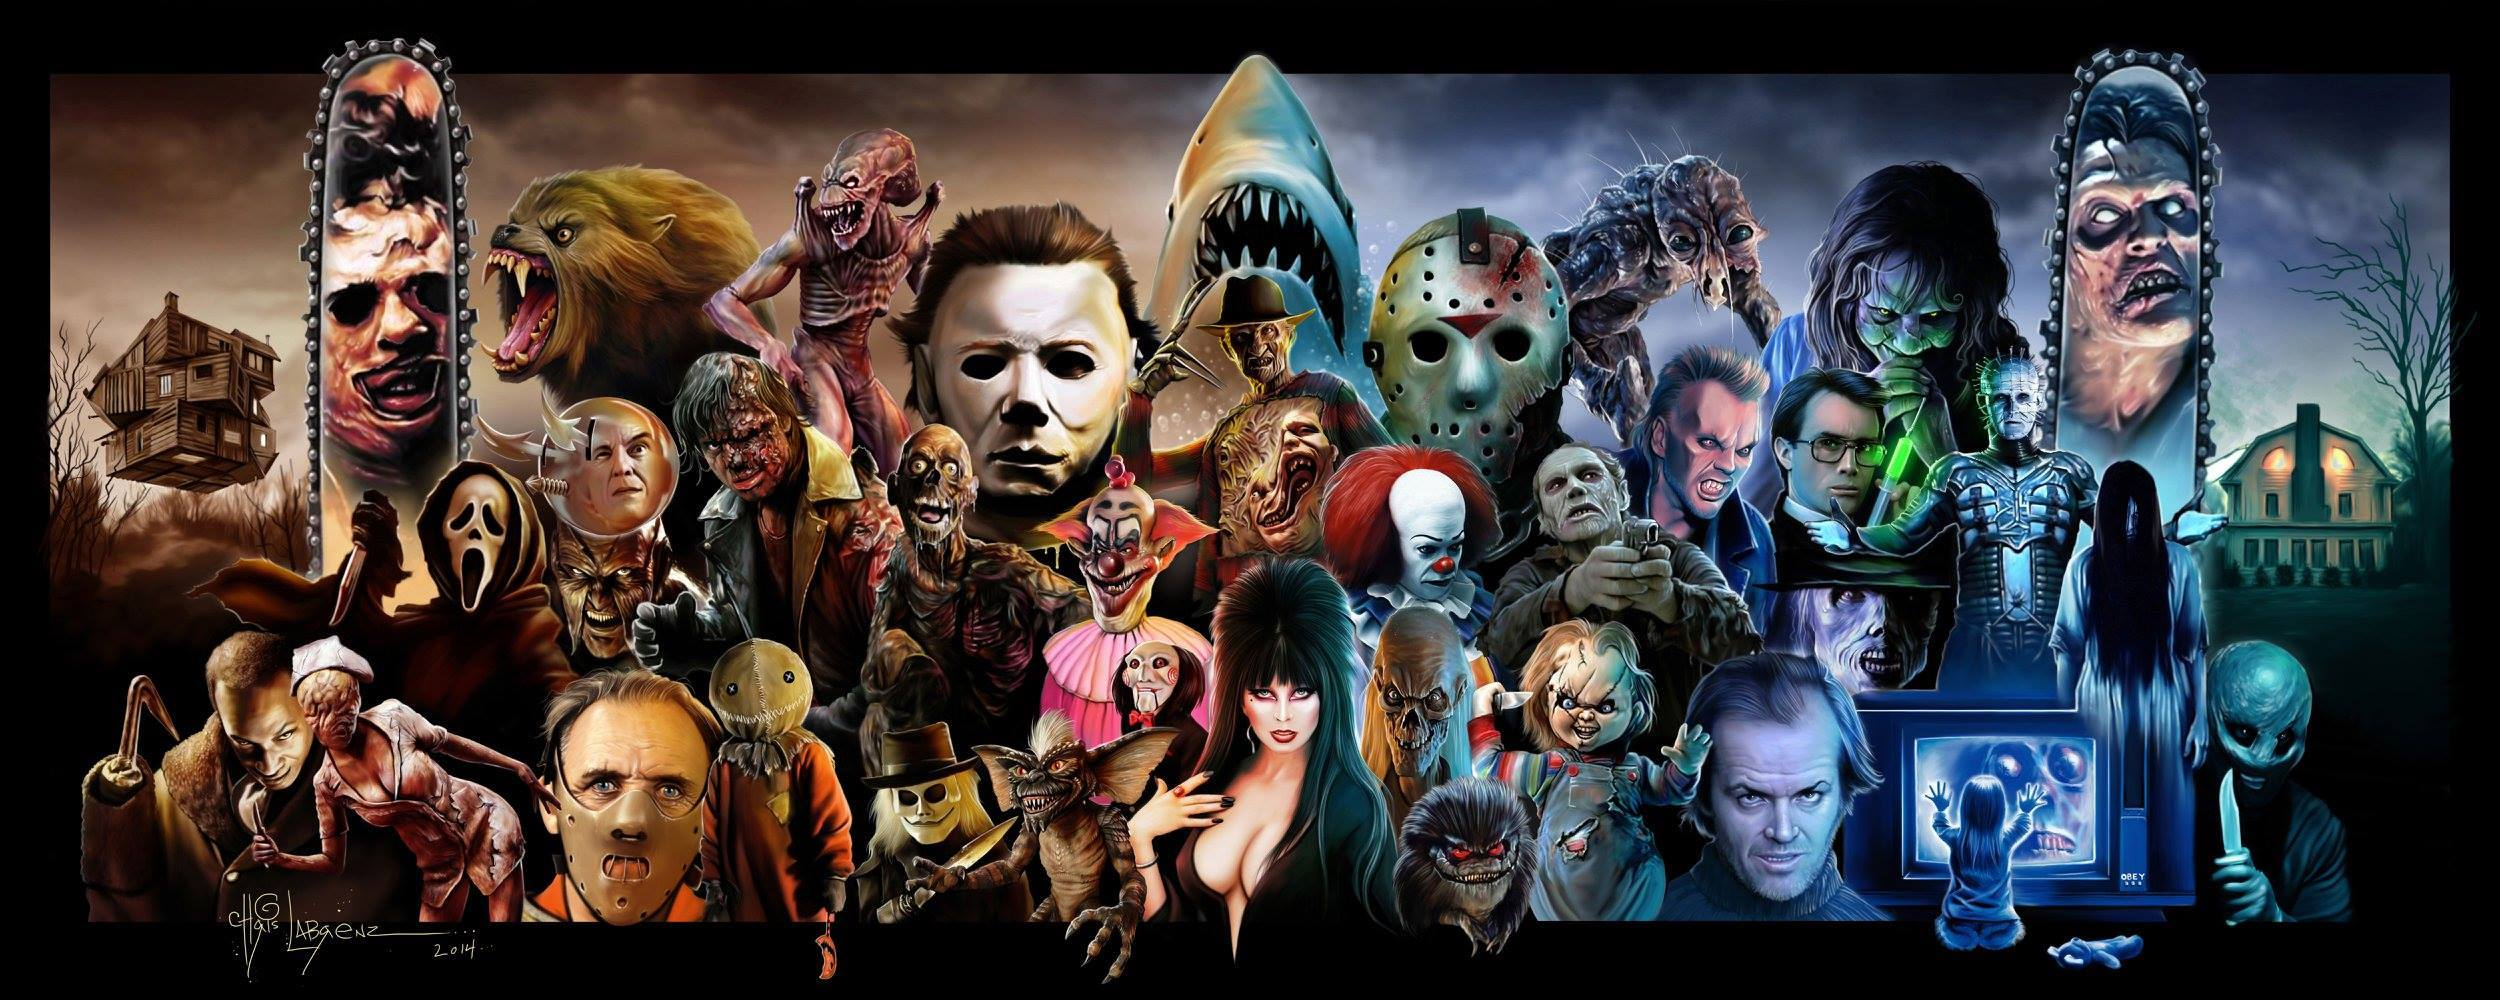 Horror movies, whether you love them or hate them, are bound to give ...